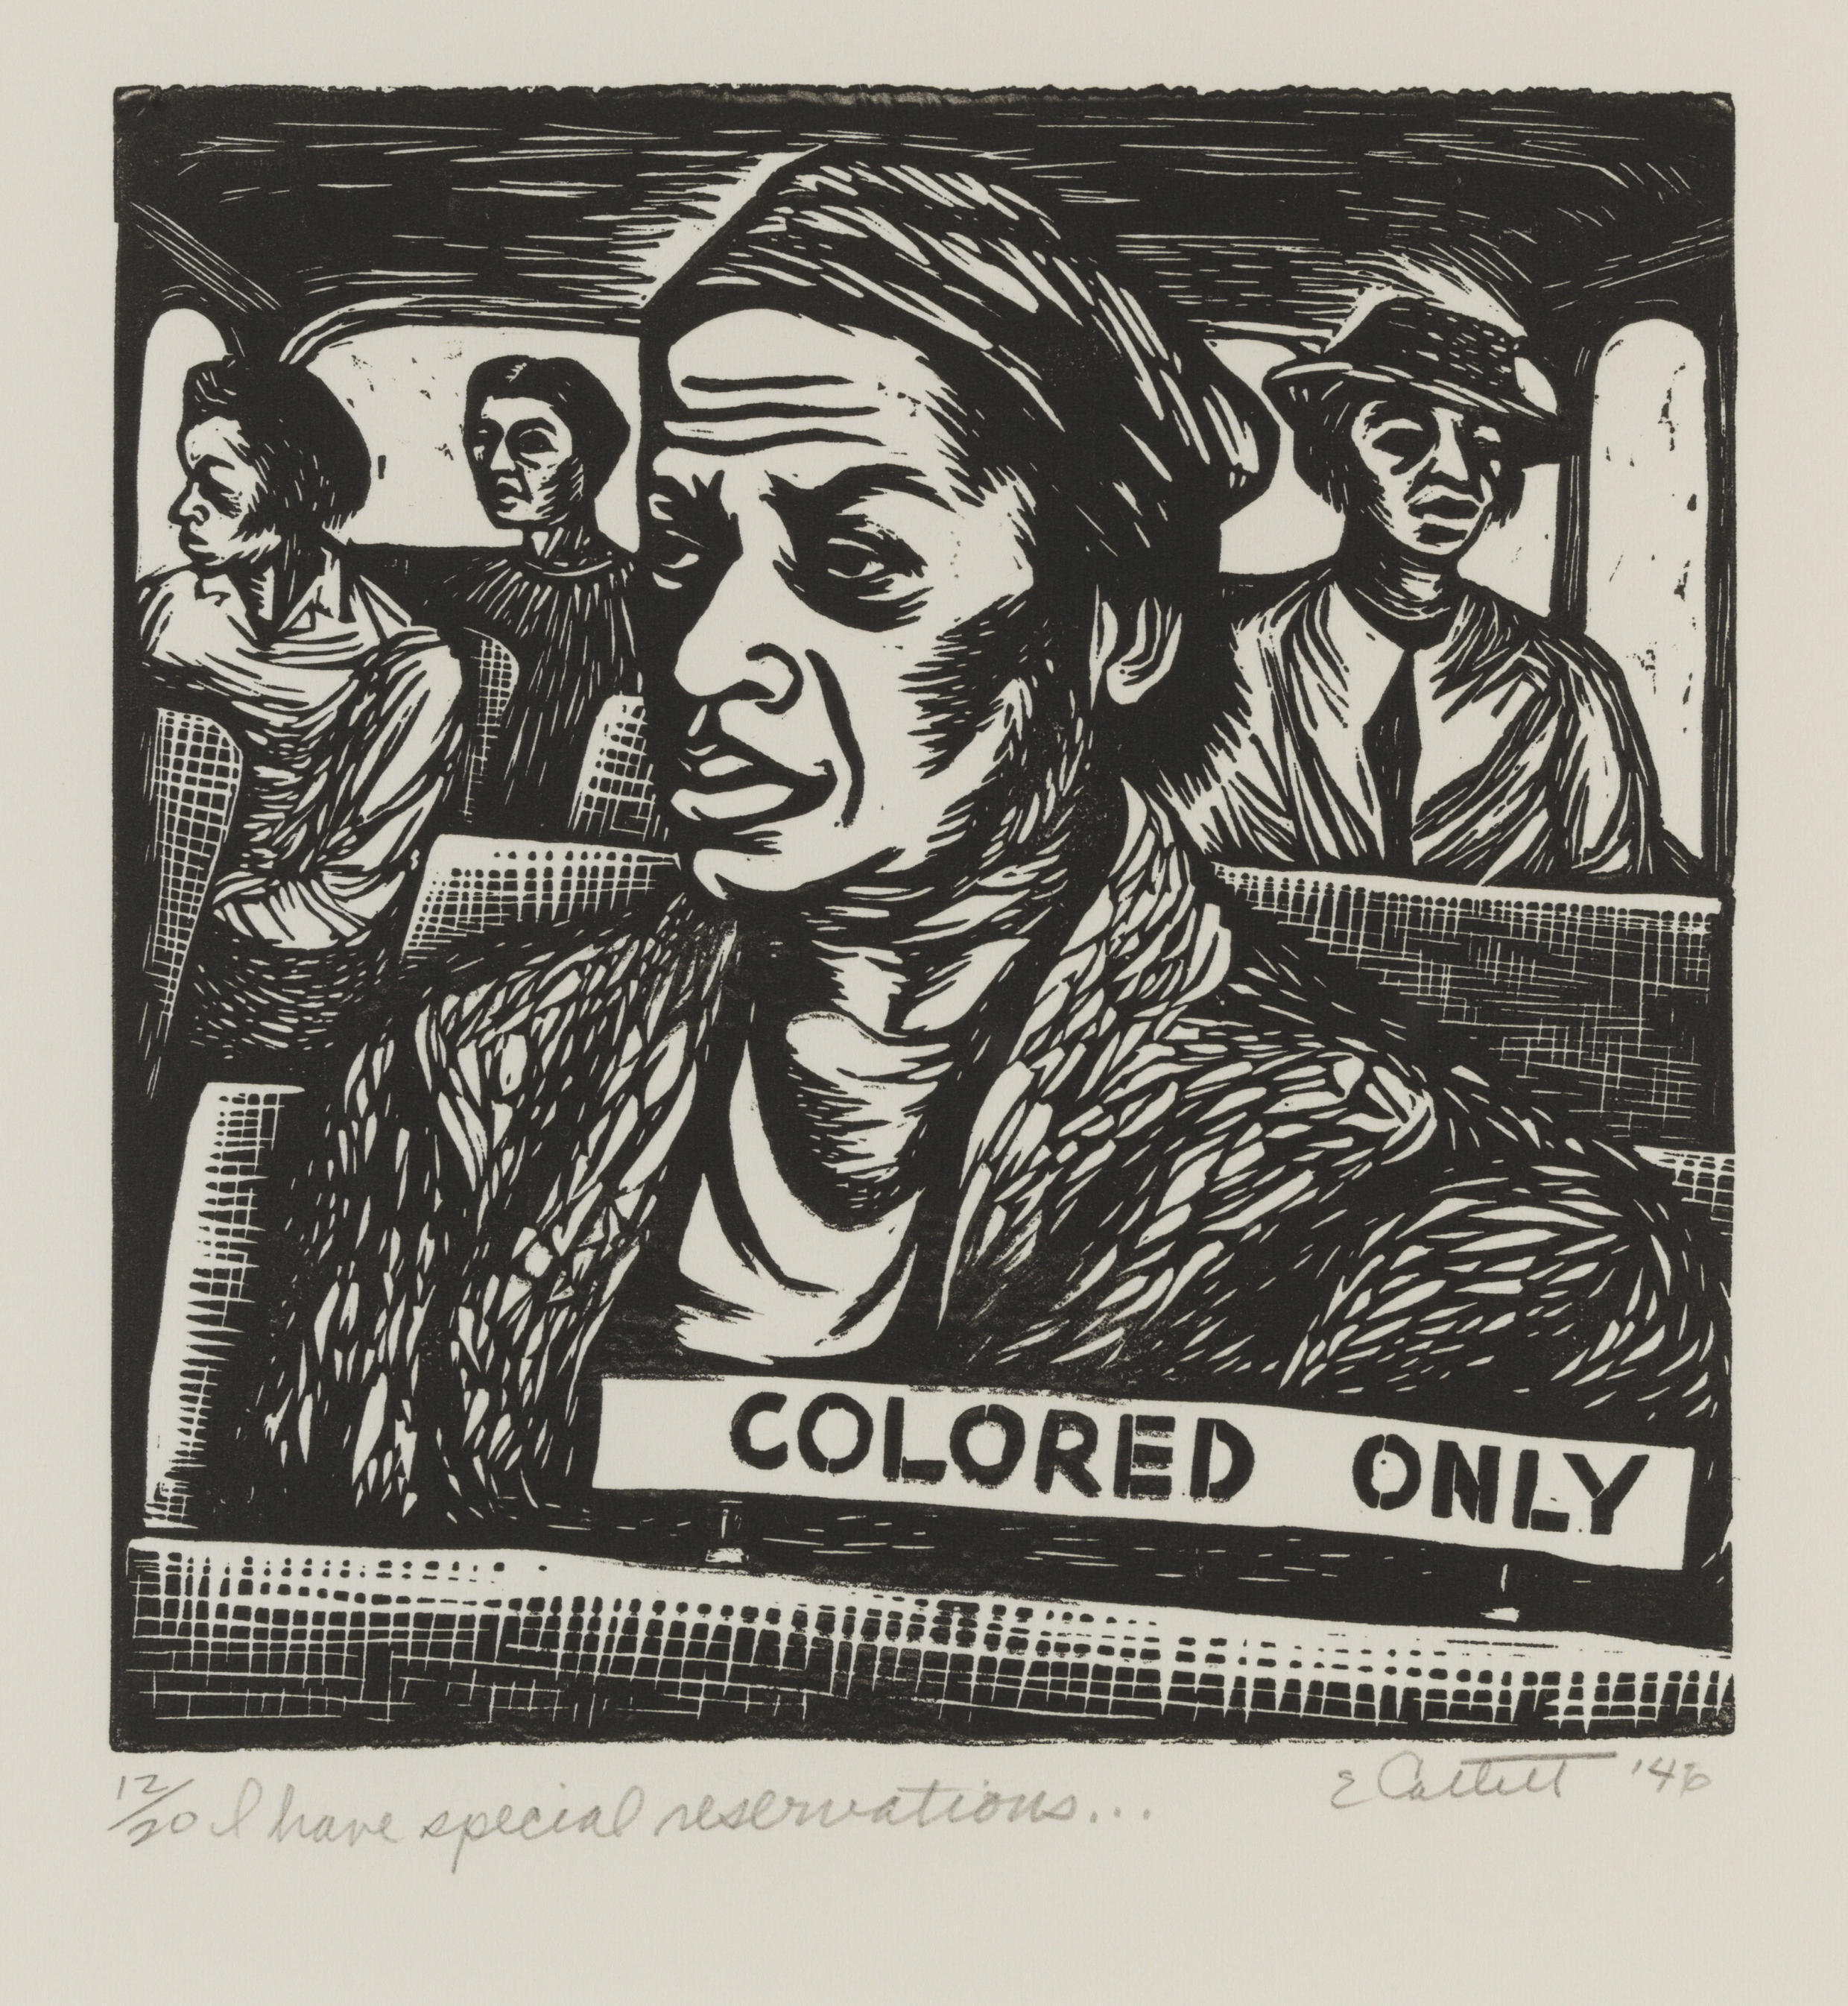 « I have special reservations… » (detail), 1946. Œuvre d'Elizabeth Catlett, exposée dans « The Color Line » au musée du quai Branly. Courtesy of the Pennsylvania Academy of the Fine Arts, Philadelphia. Art by Women Collection, Gift of Linda Lee Alter, Art.